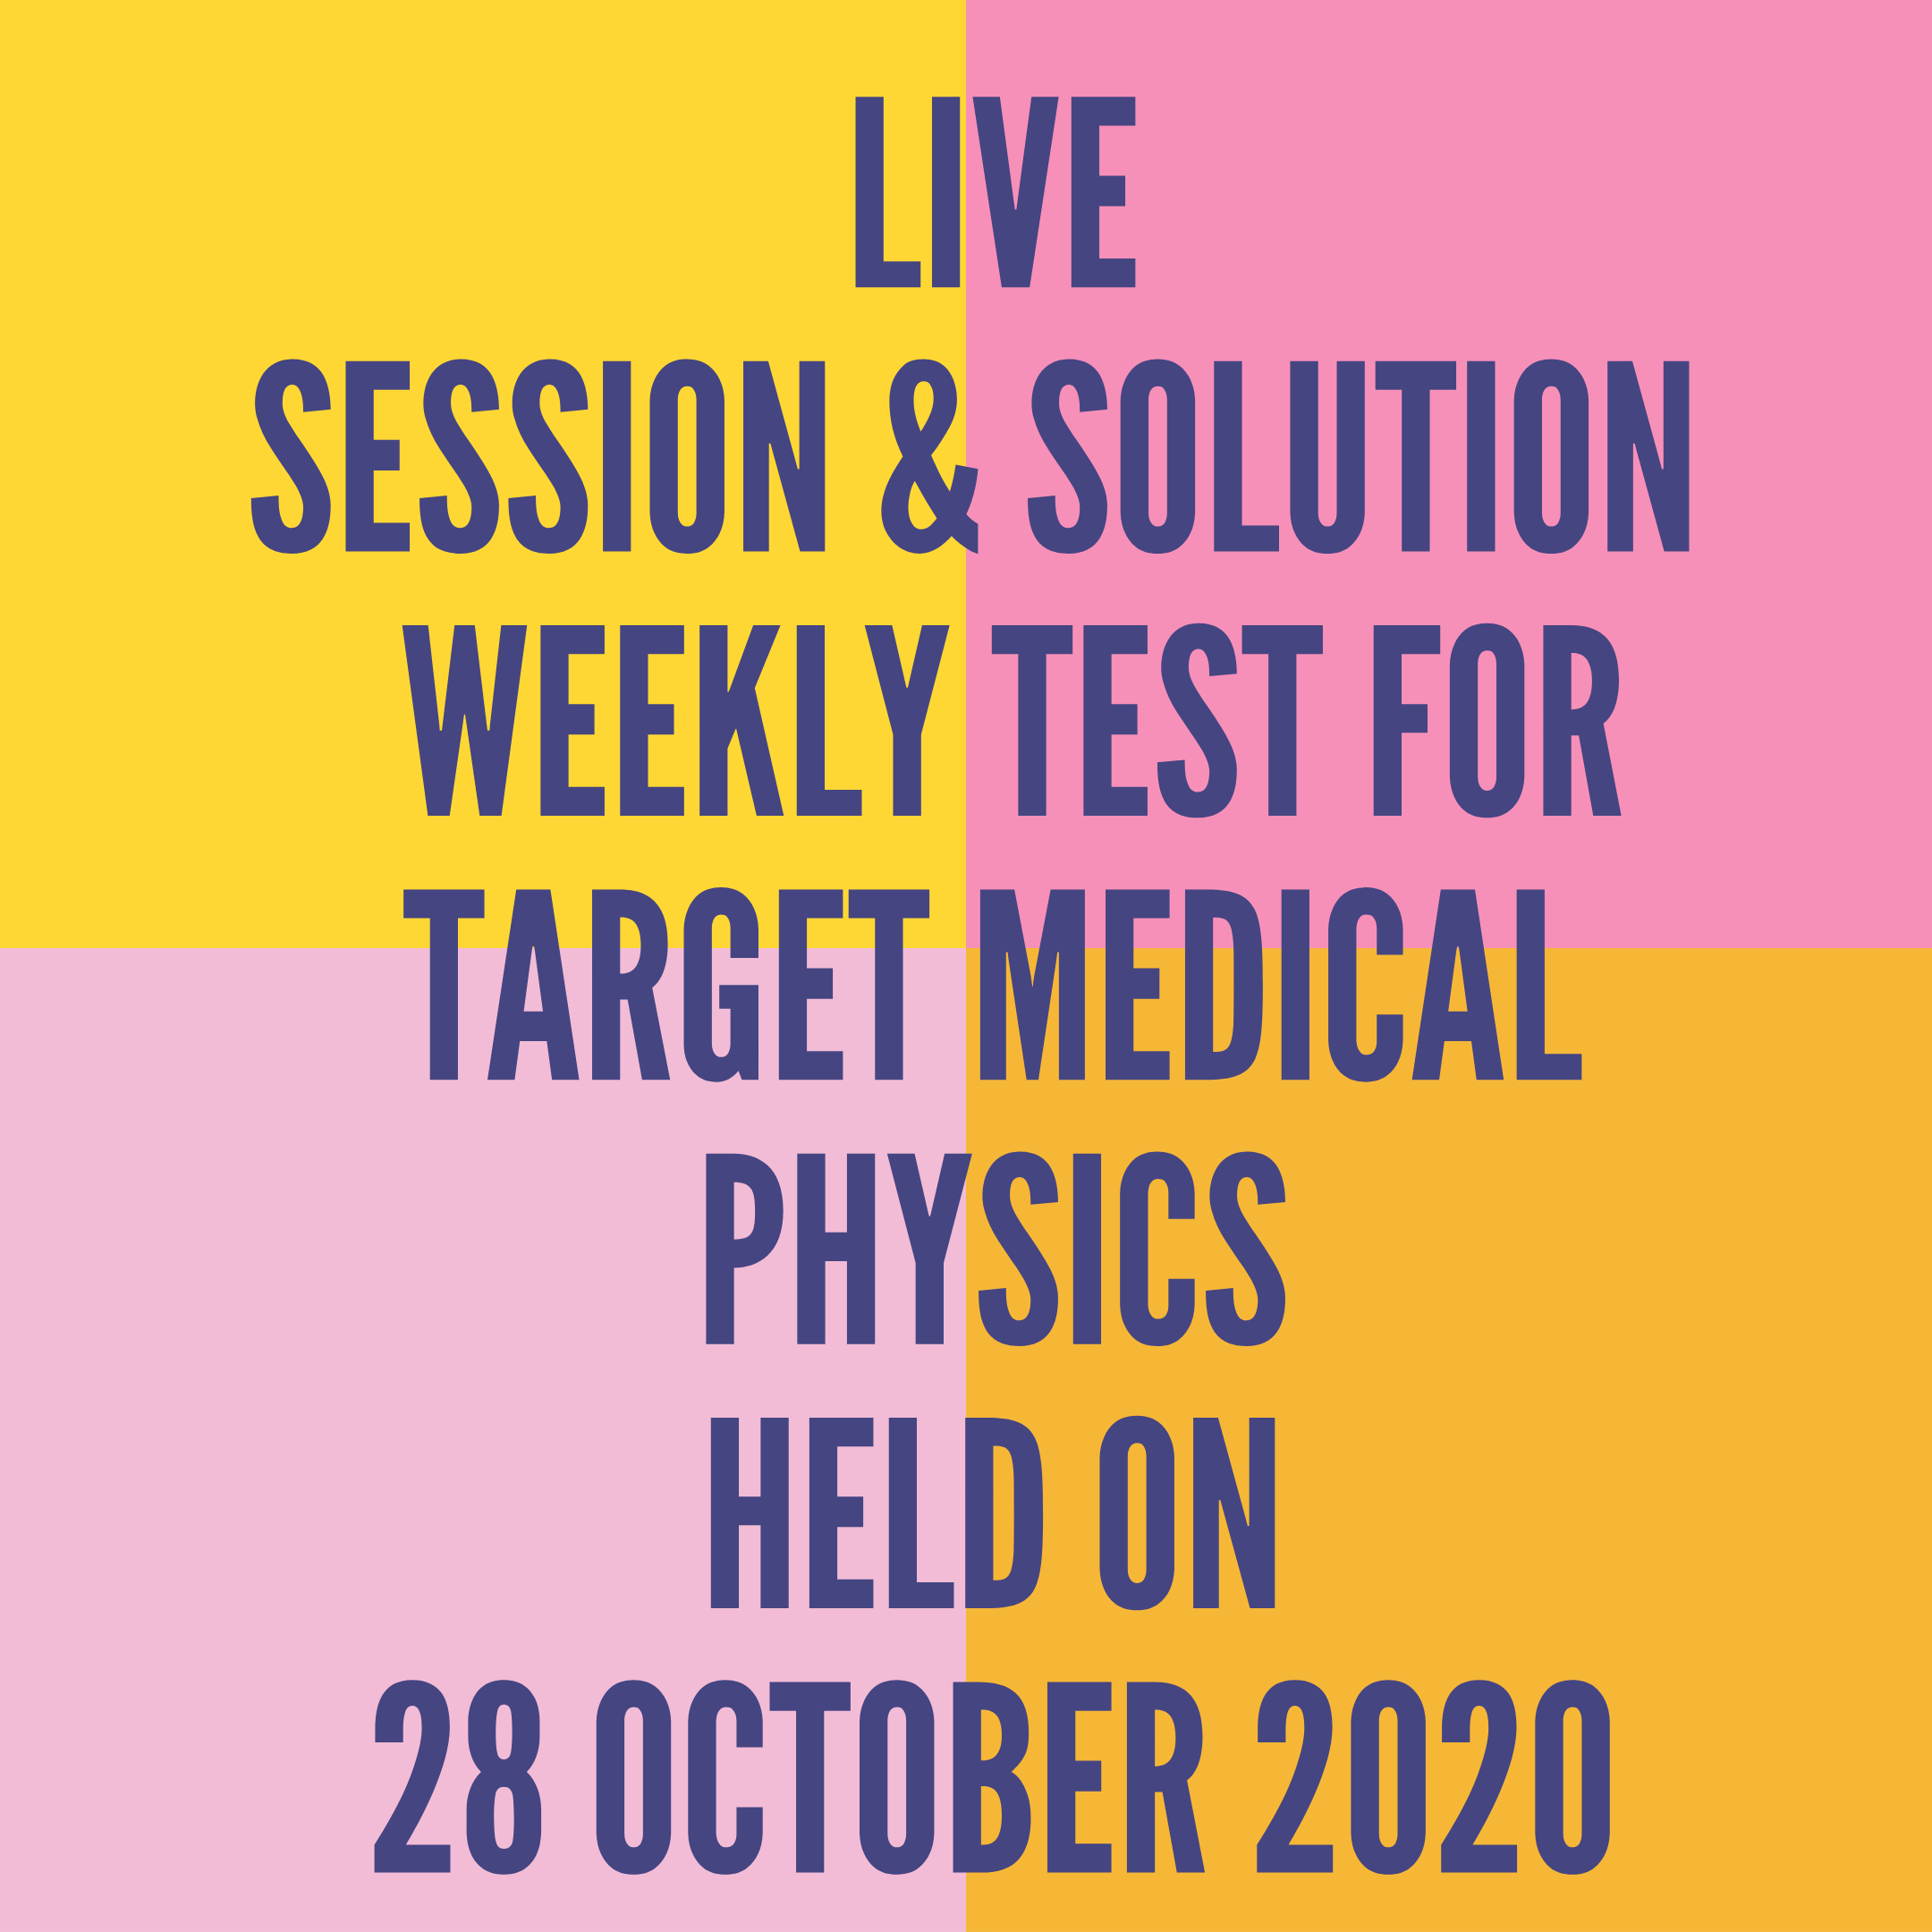 LIVE SESSION & SOLUTION  WEEKLY TEST FOR  TARGET MEDICAL PHYSICS HELD ON 28 OCTOBER 2020